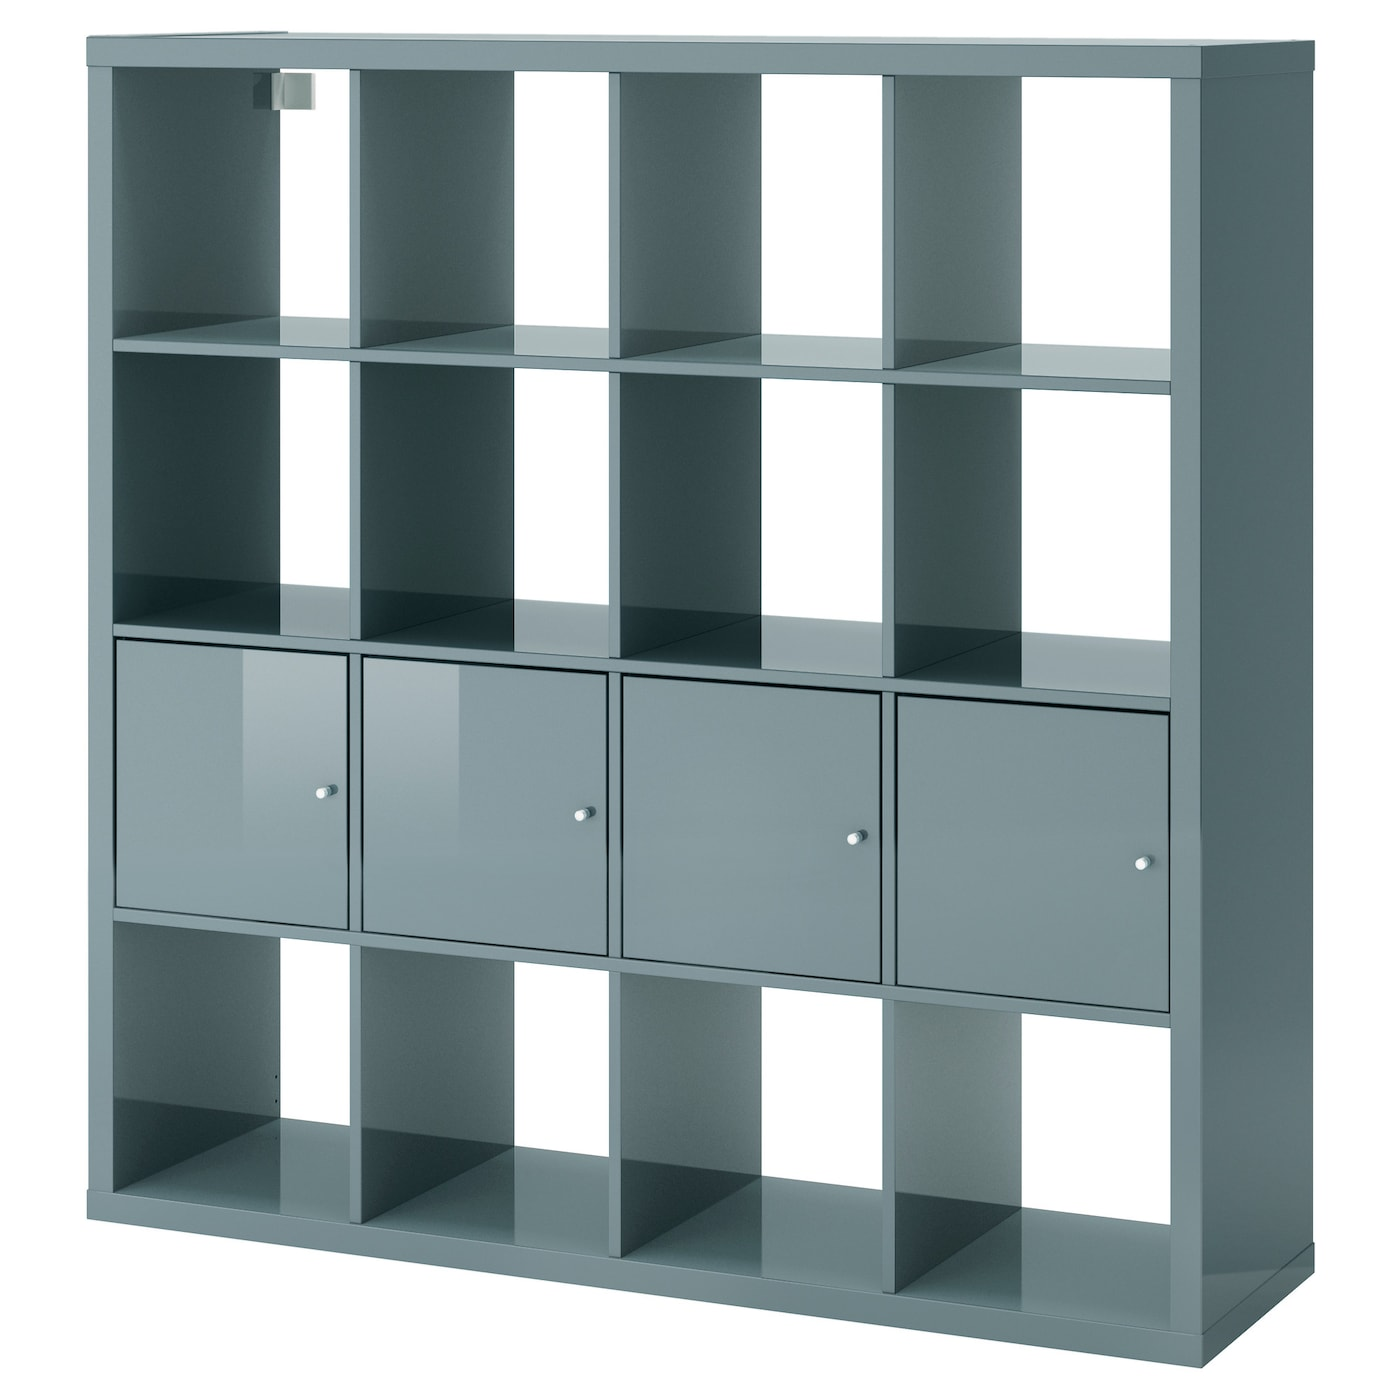 Kallax shelving unit with 4 inserts high gloss grey turquoise 147x147 cm ikea - Etagere murale cube ikea ...